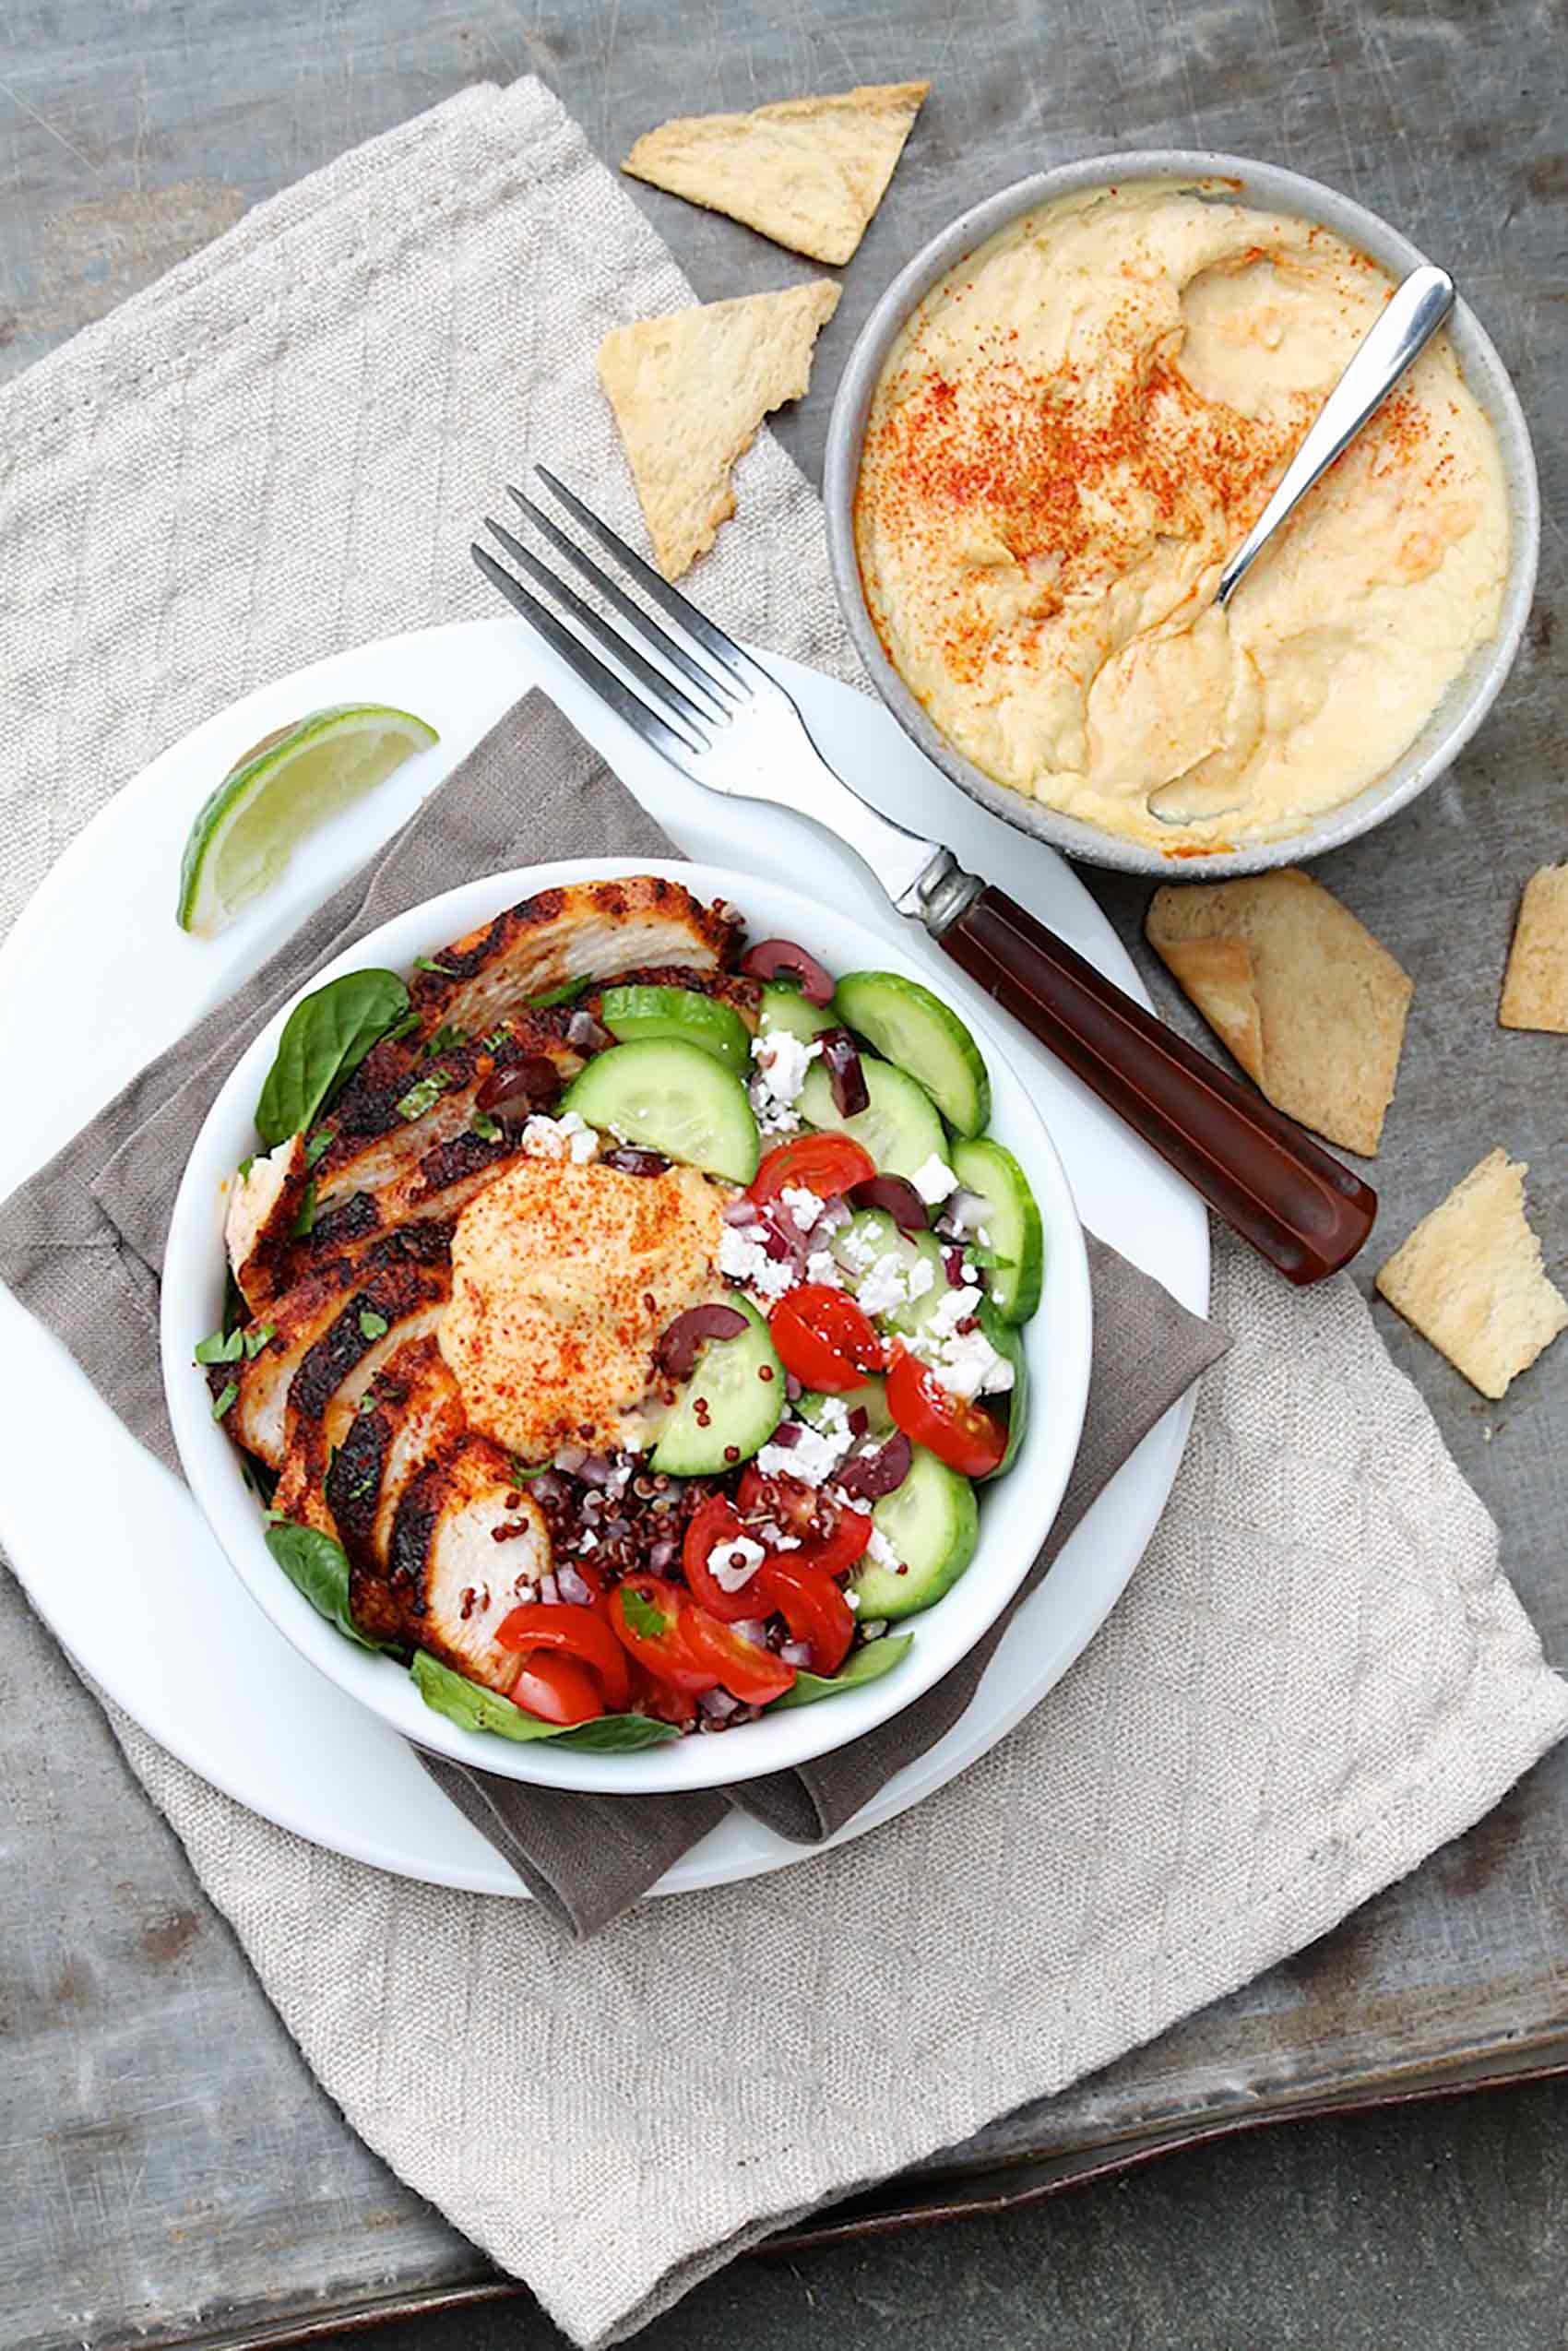 Mediterranean Chicken & Hummus Bowls are easy to assemble, loaded with filling protein and bursting with flavor.